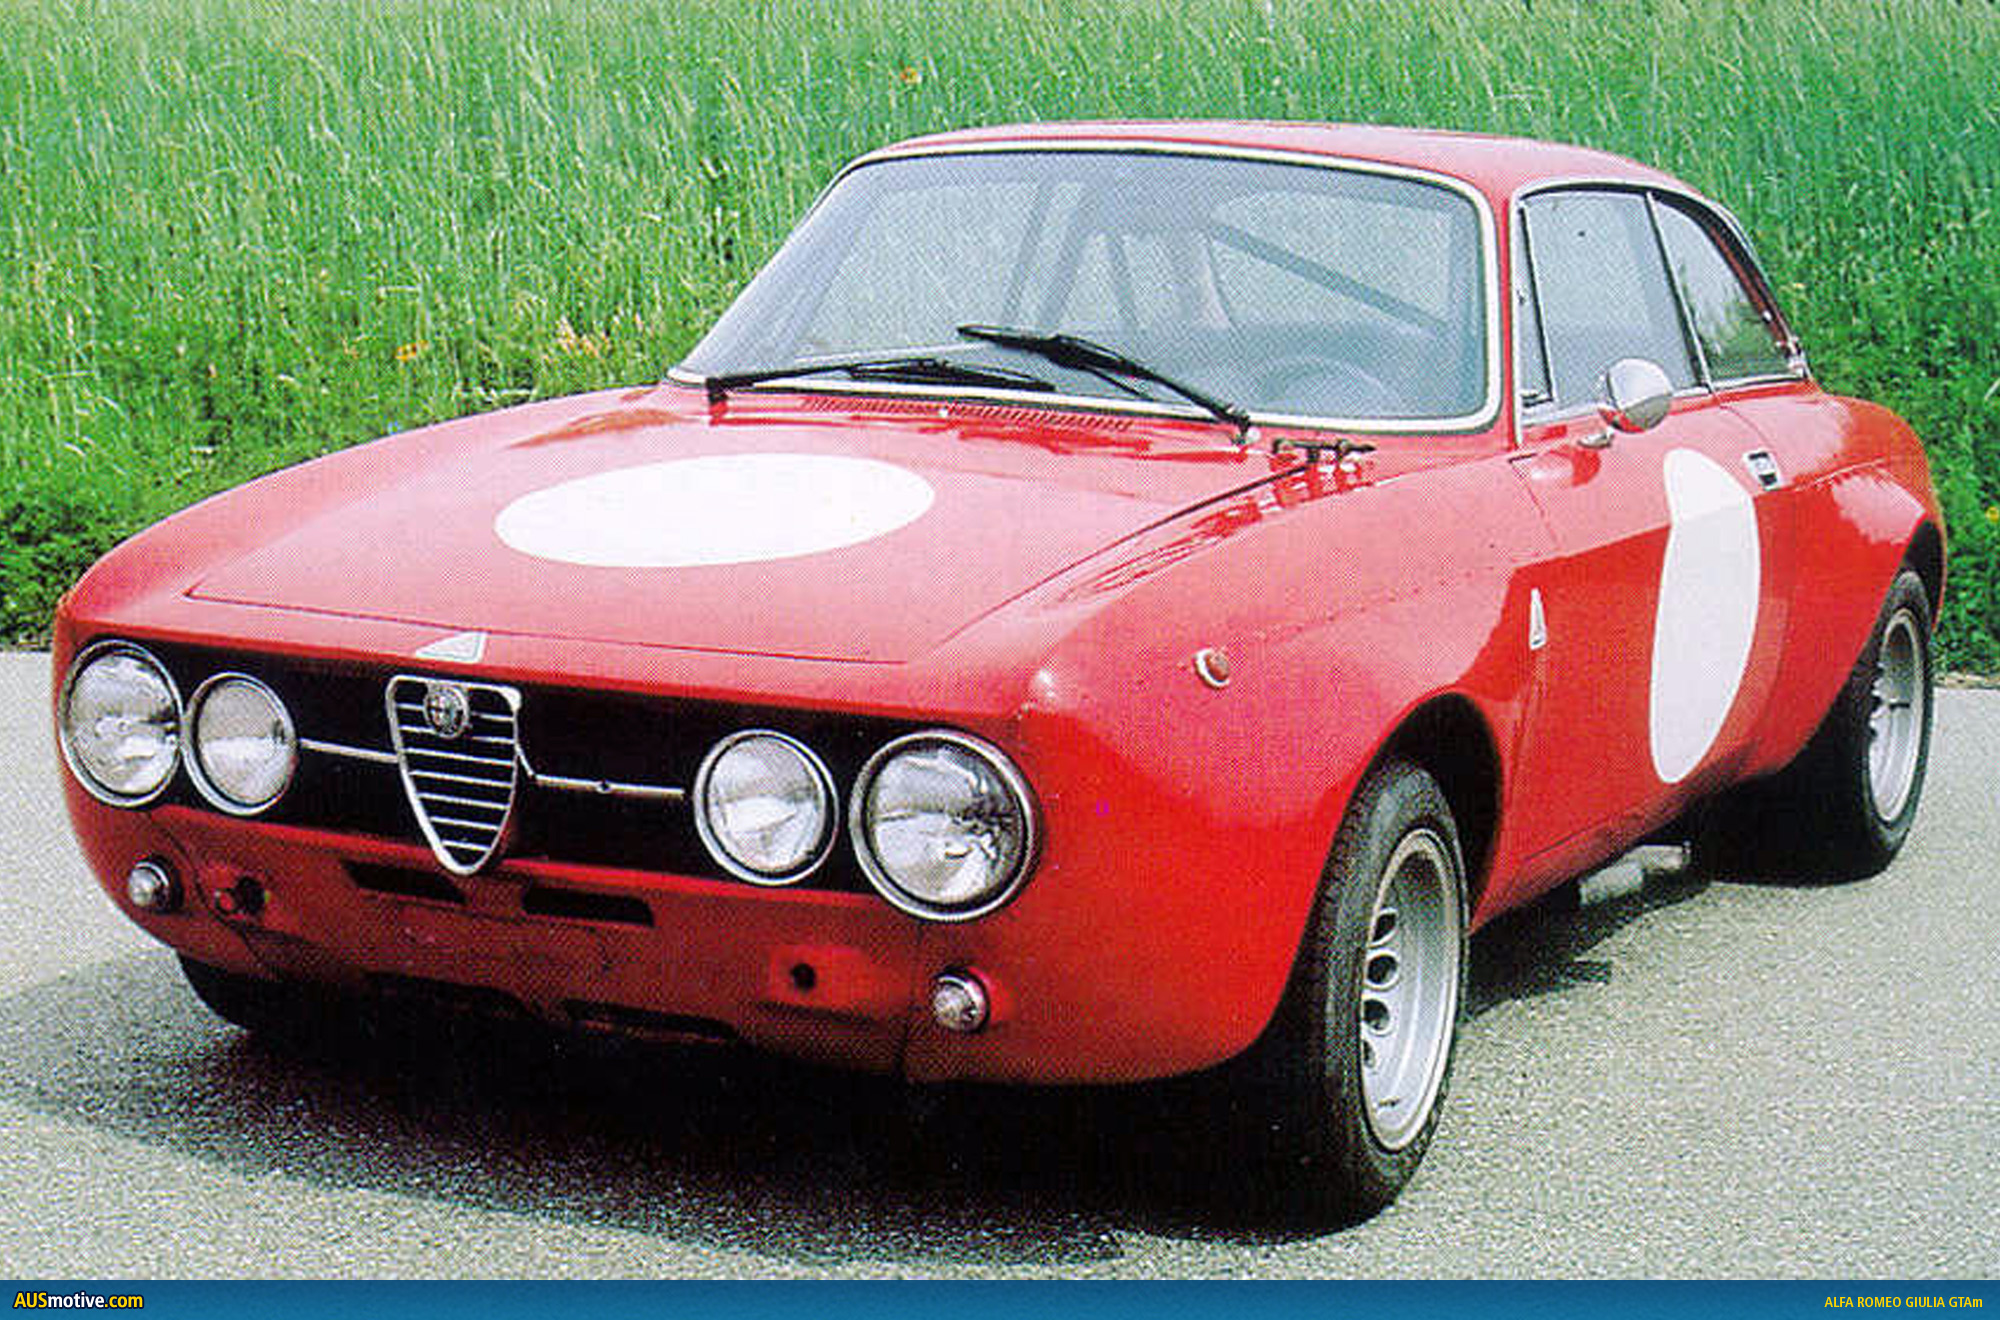 AUSmotive.com » Alfa Romeo Giulia GTAm voted fan favourite